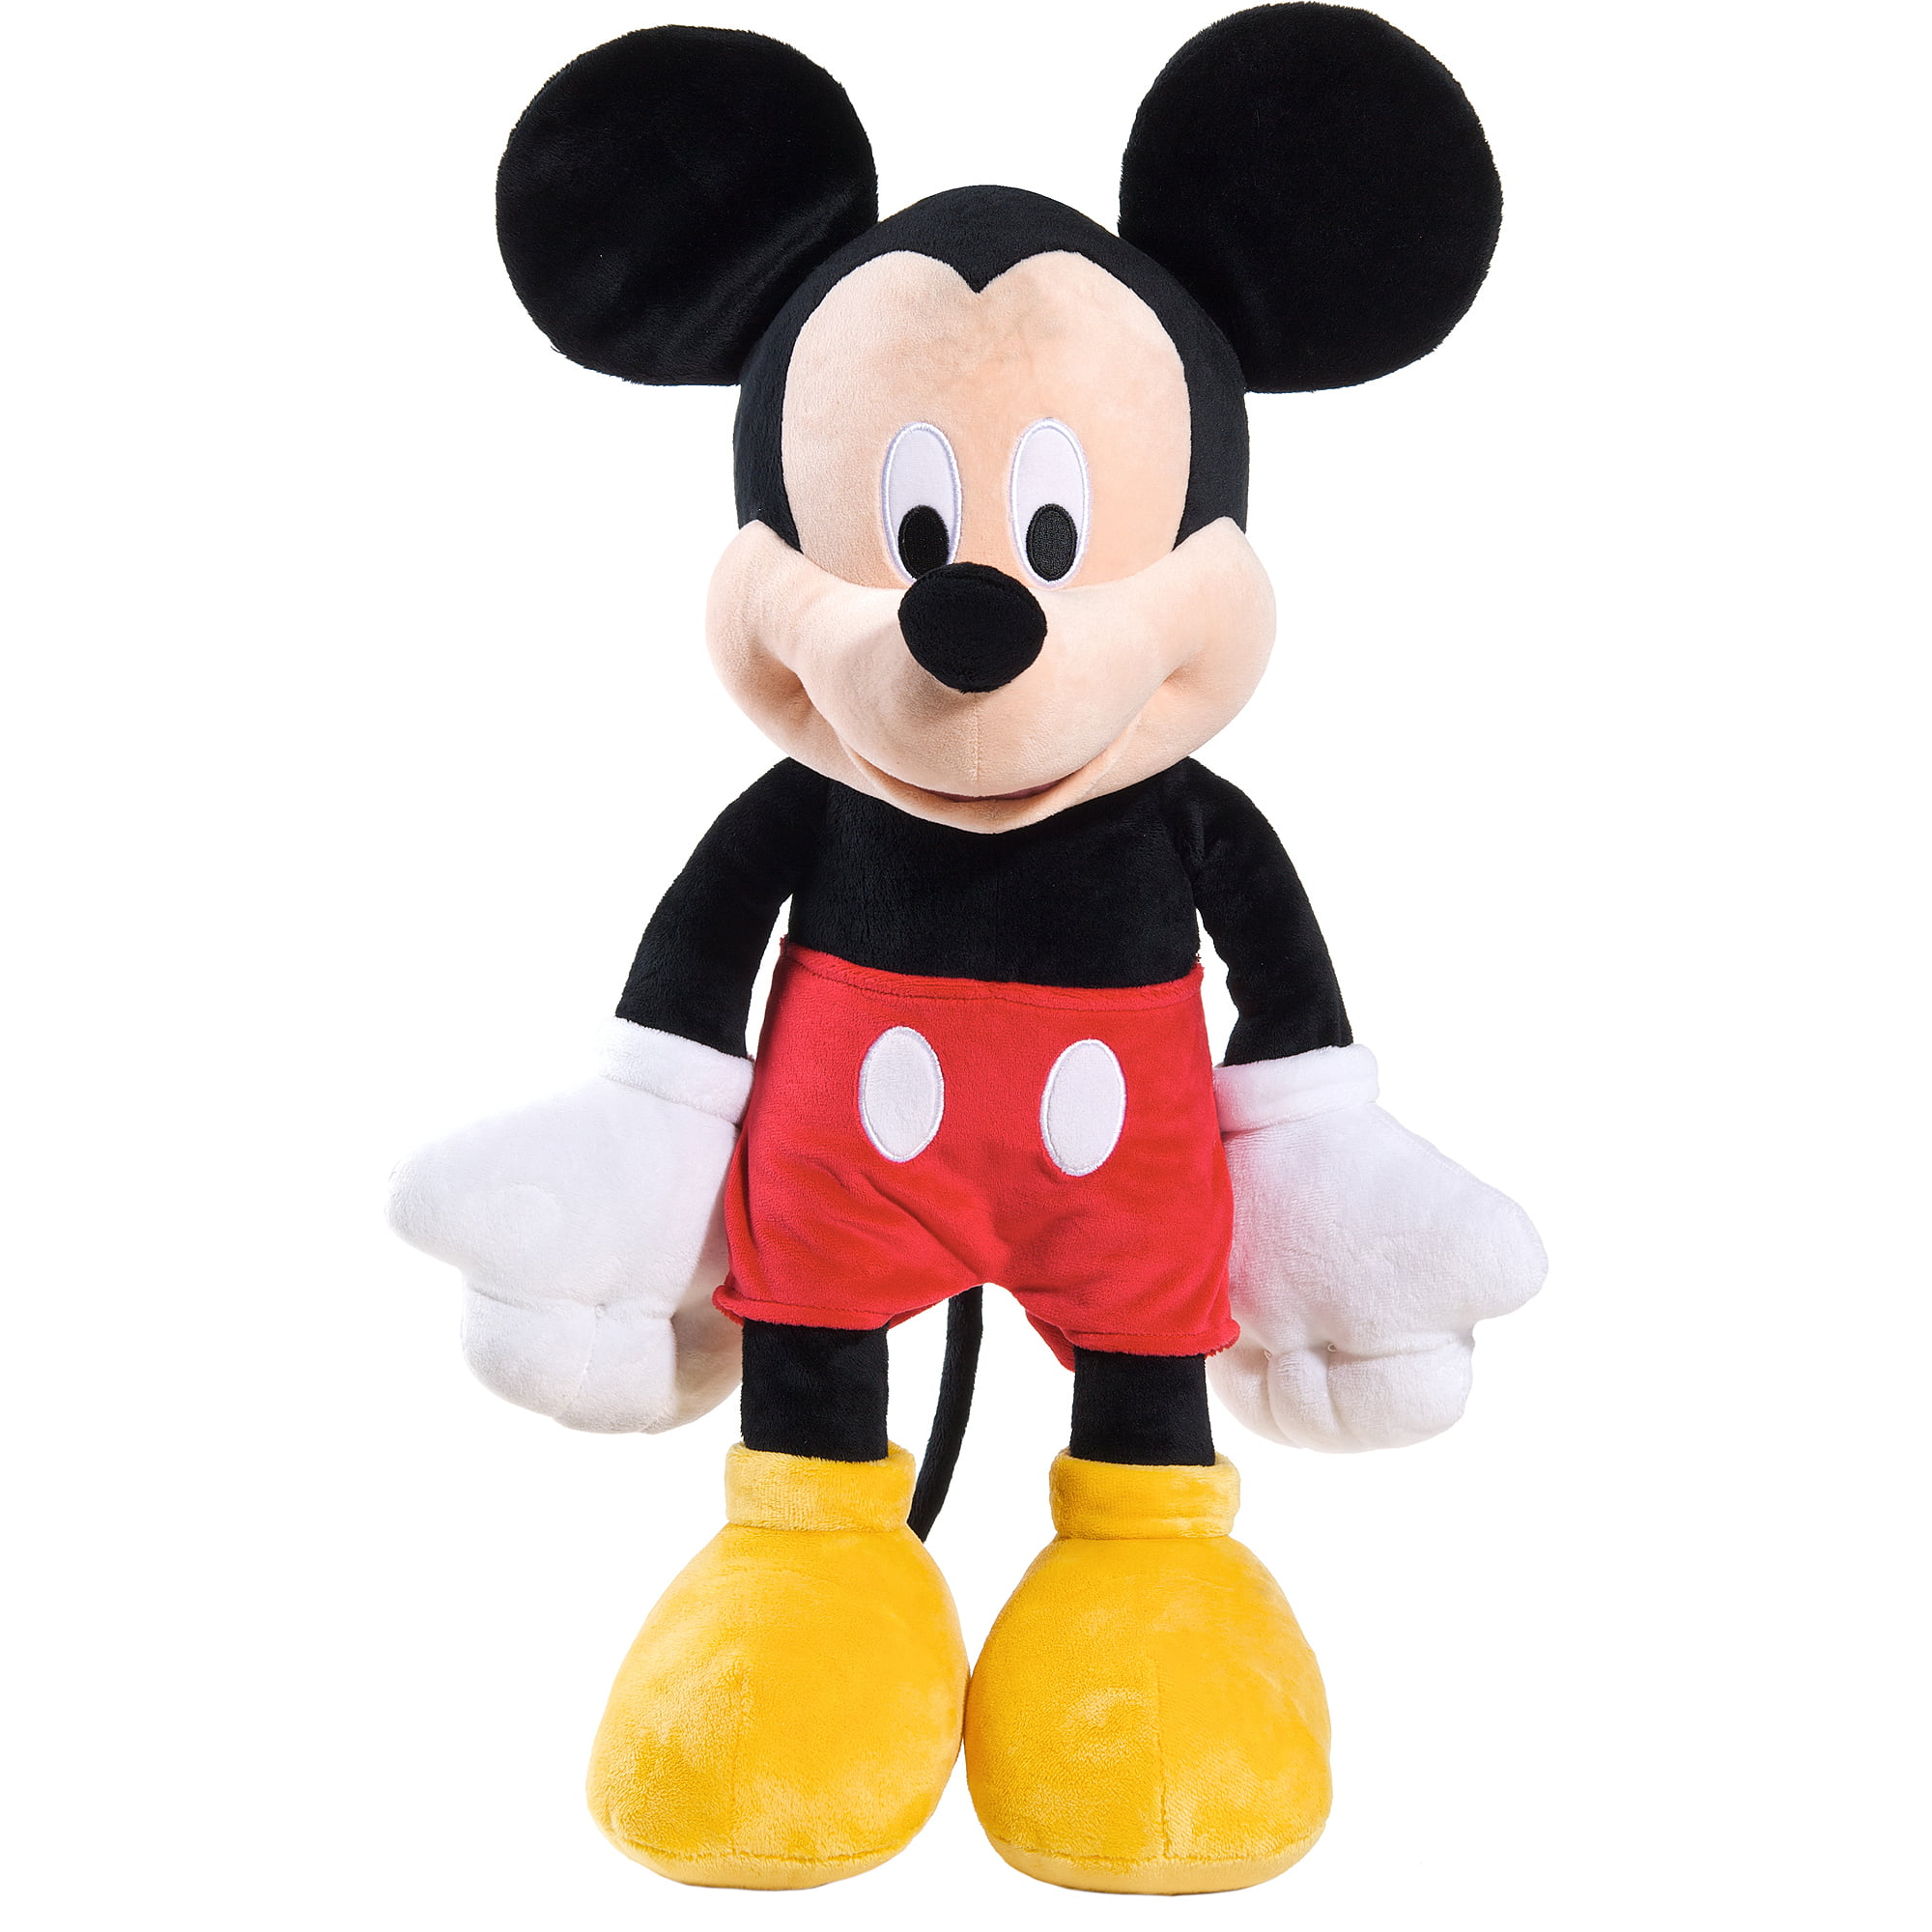 Mickey Mouse Toys : Disney mickey plush